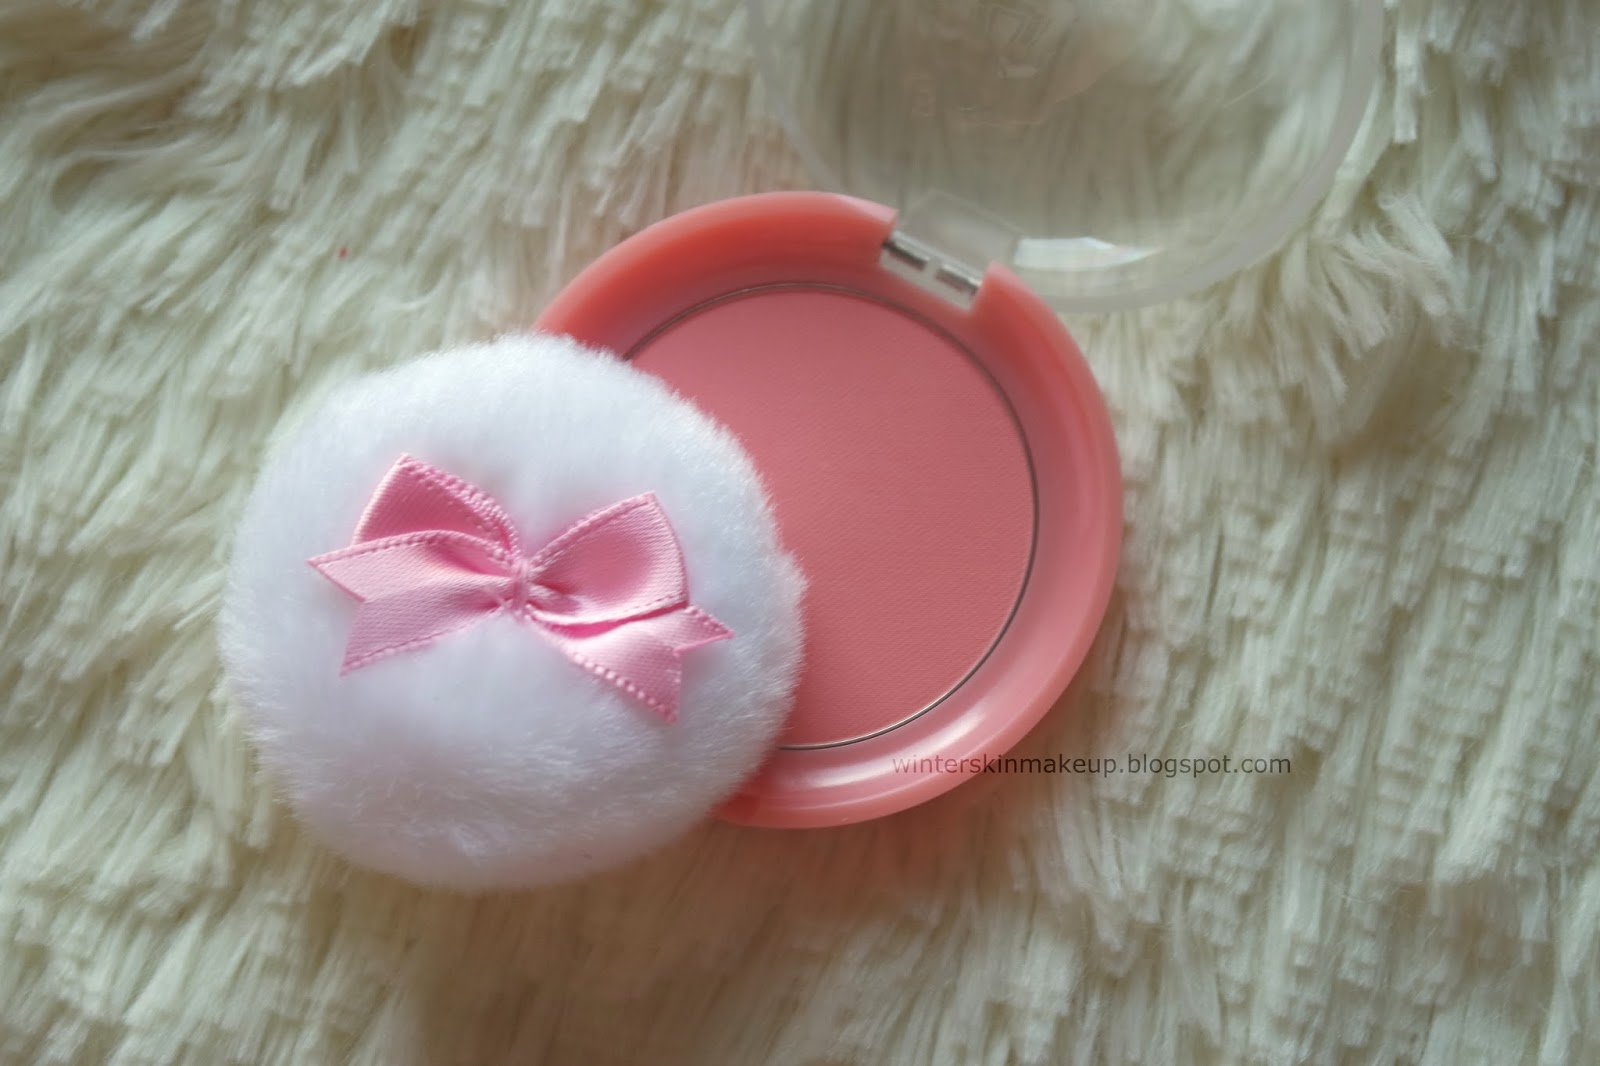 Etude House Lovely Cookie Blusher - Grapefruit Jelly